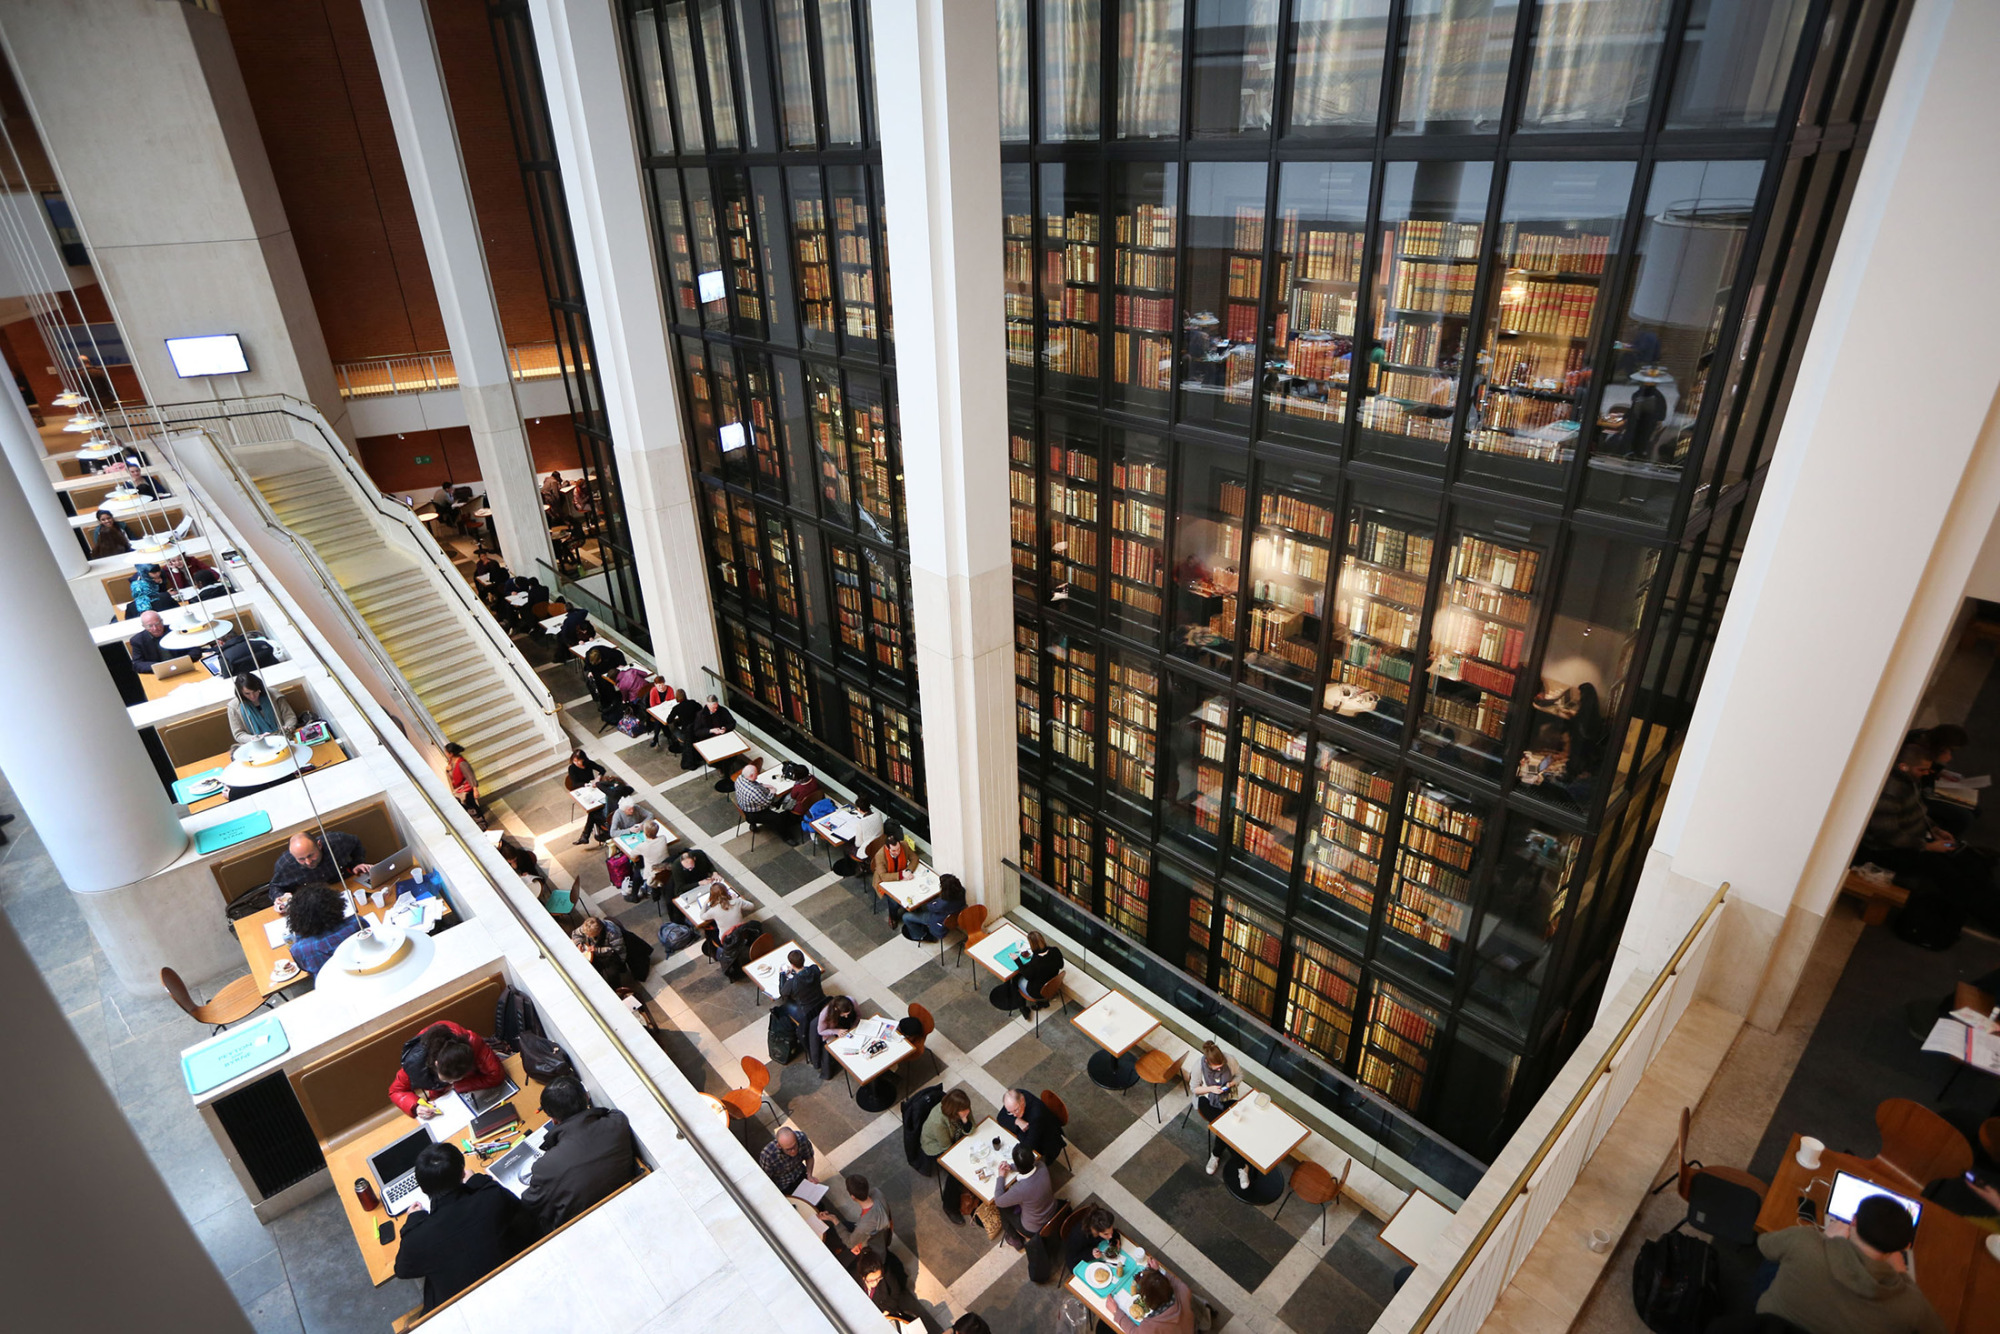 You Can Be Forgotten Online, But Not in the British Library